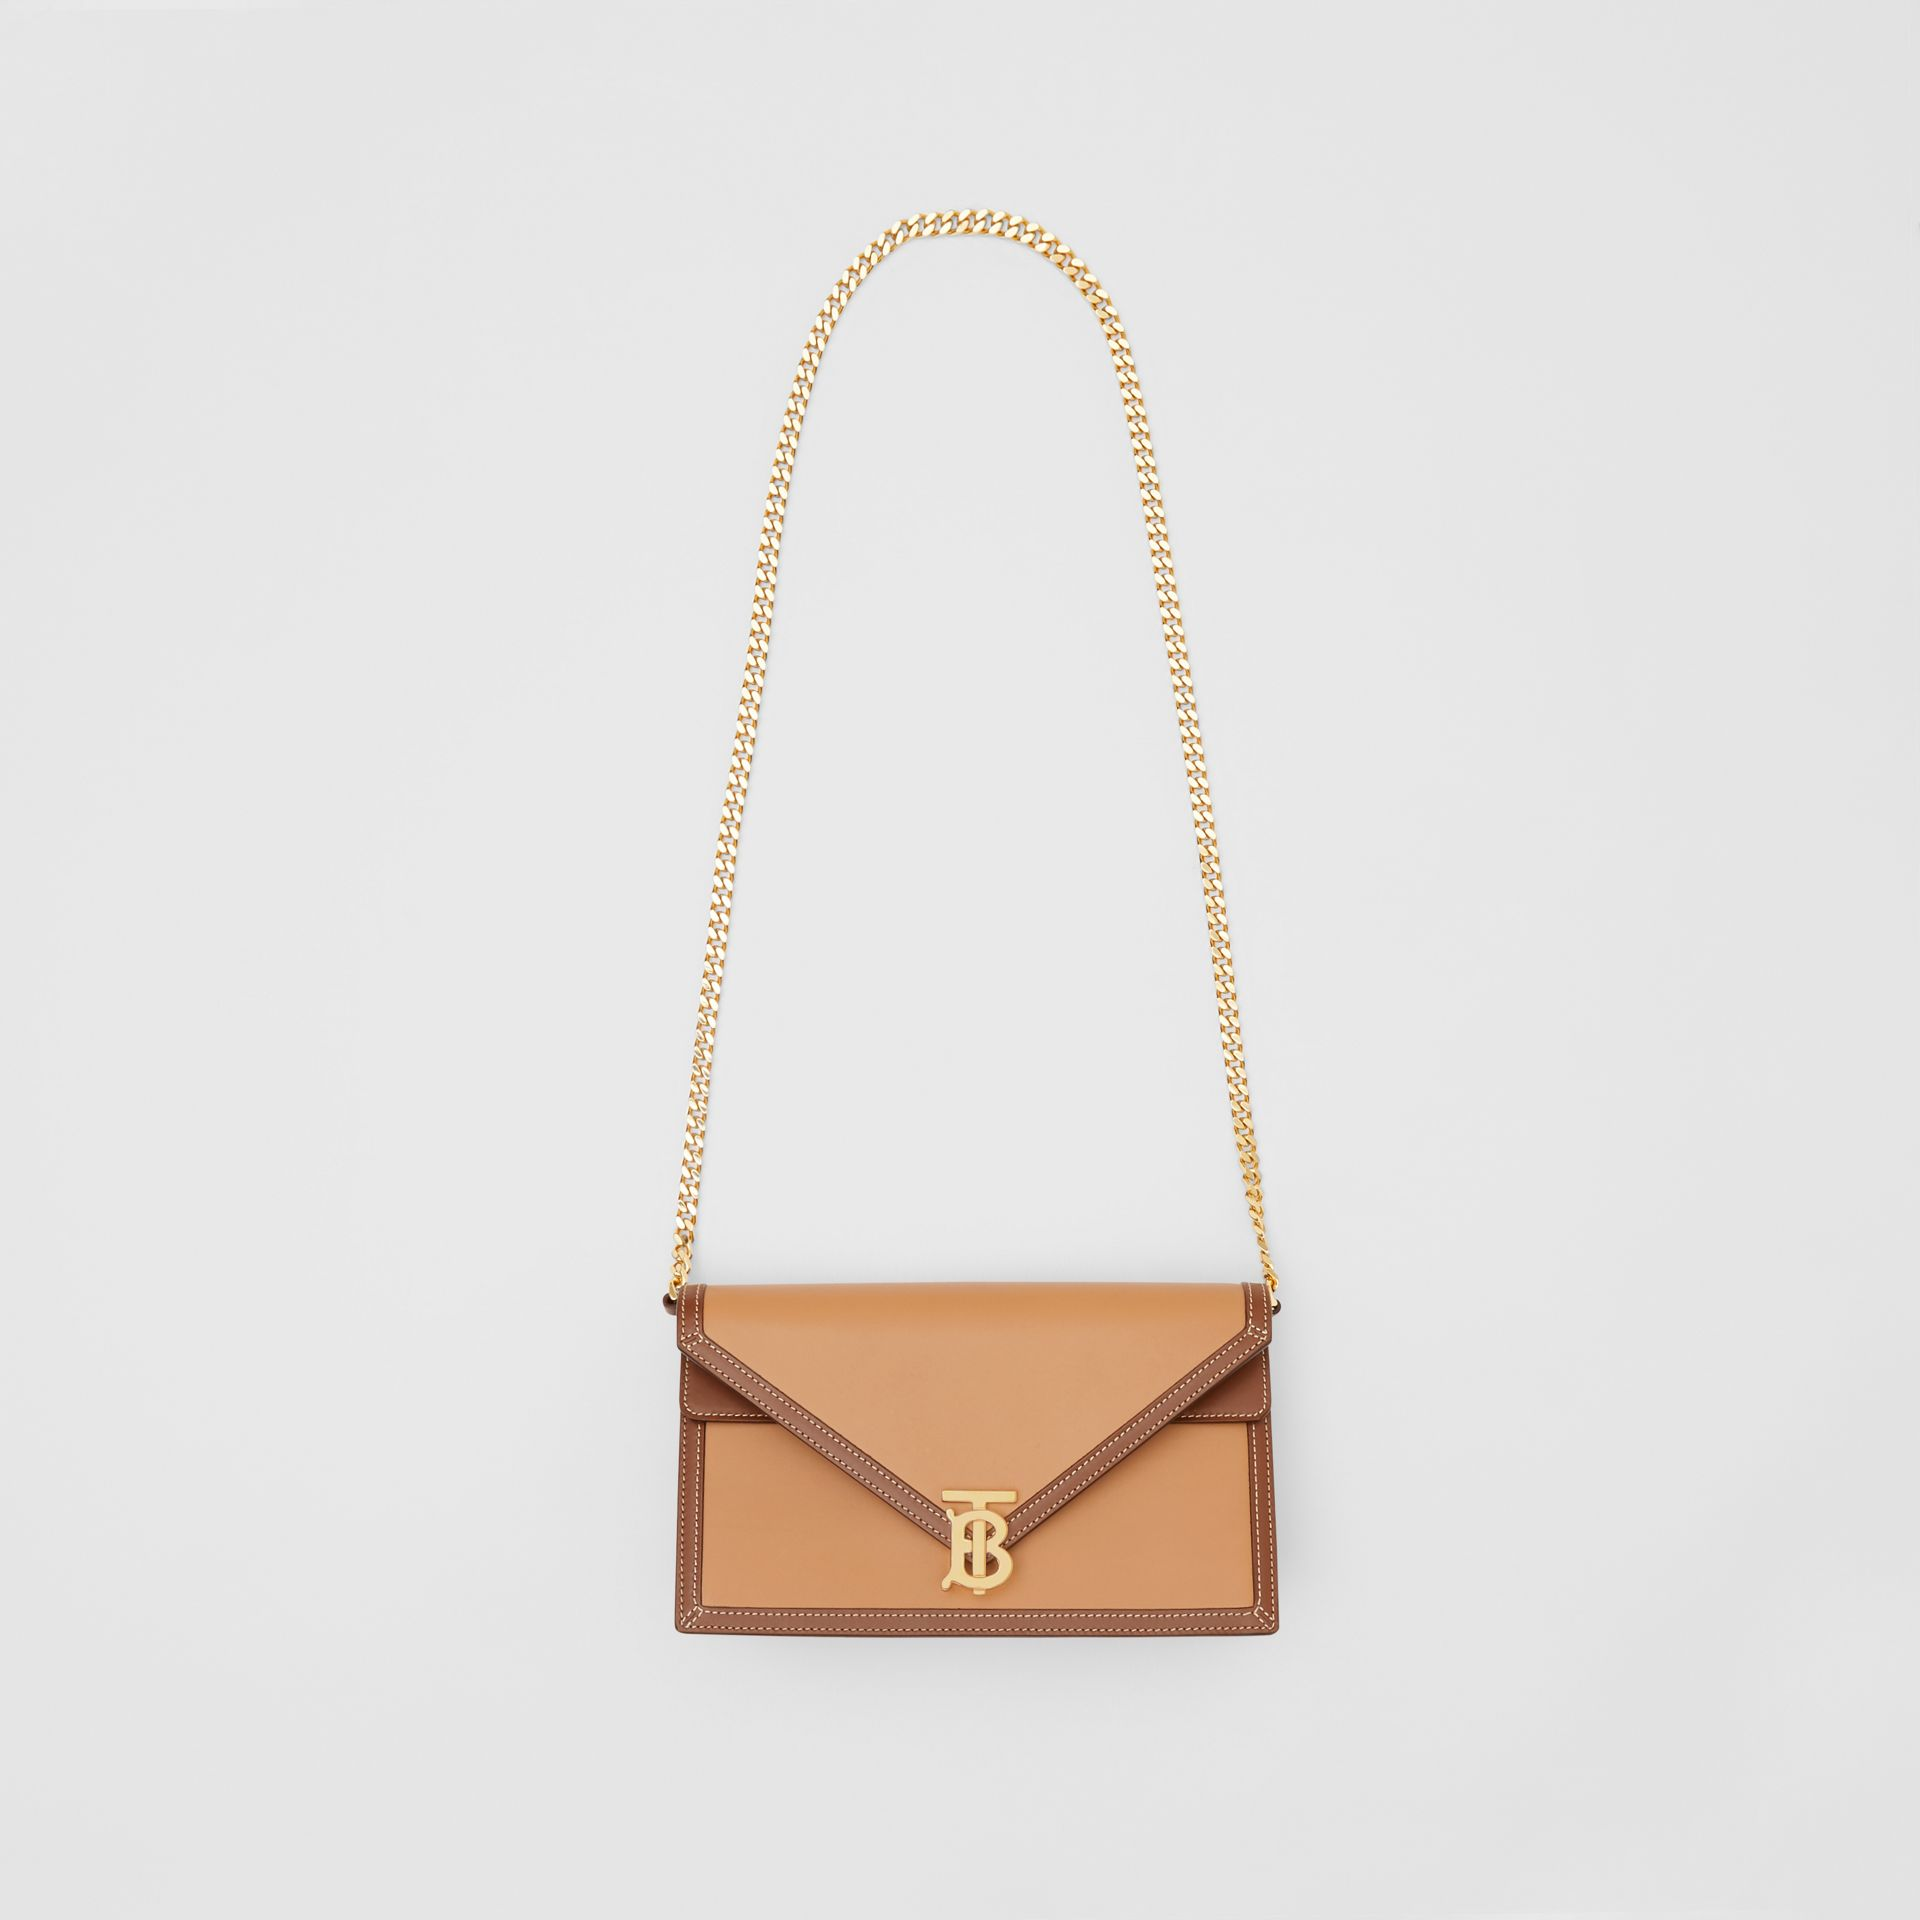 Small Two-tone Leather TB Envelope Clutch in Malt Brown - Women | Burberry - gallery image 3